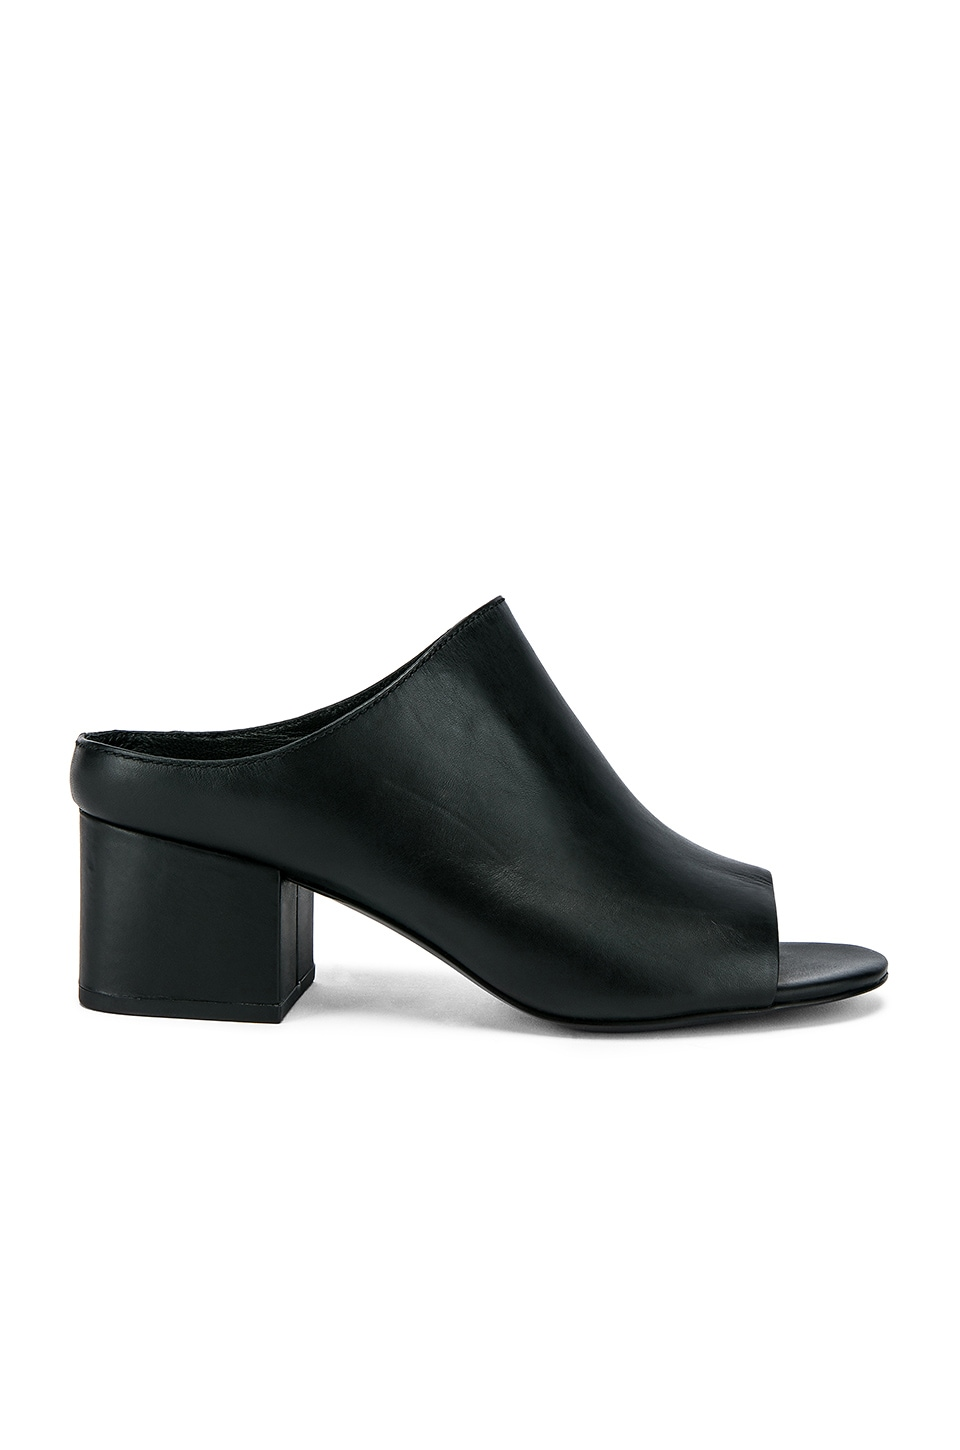 Cube Open Toe Slip On